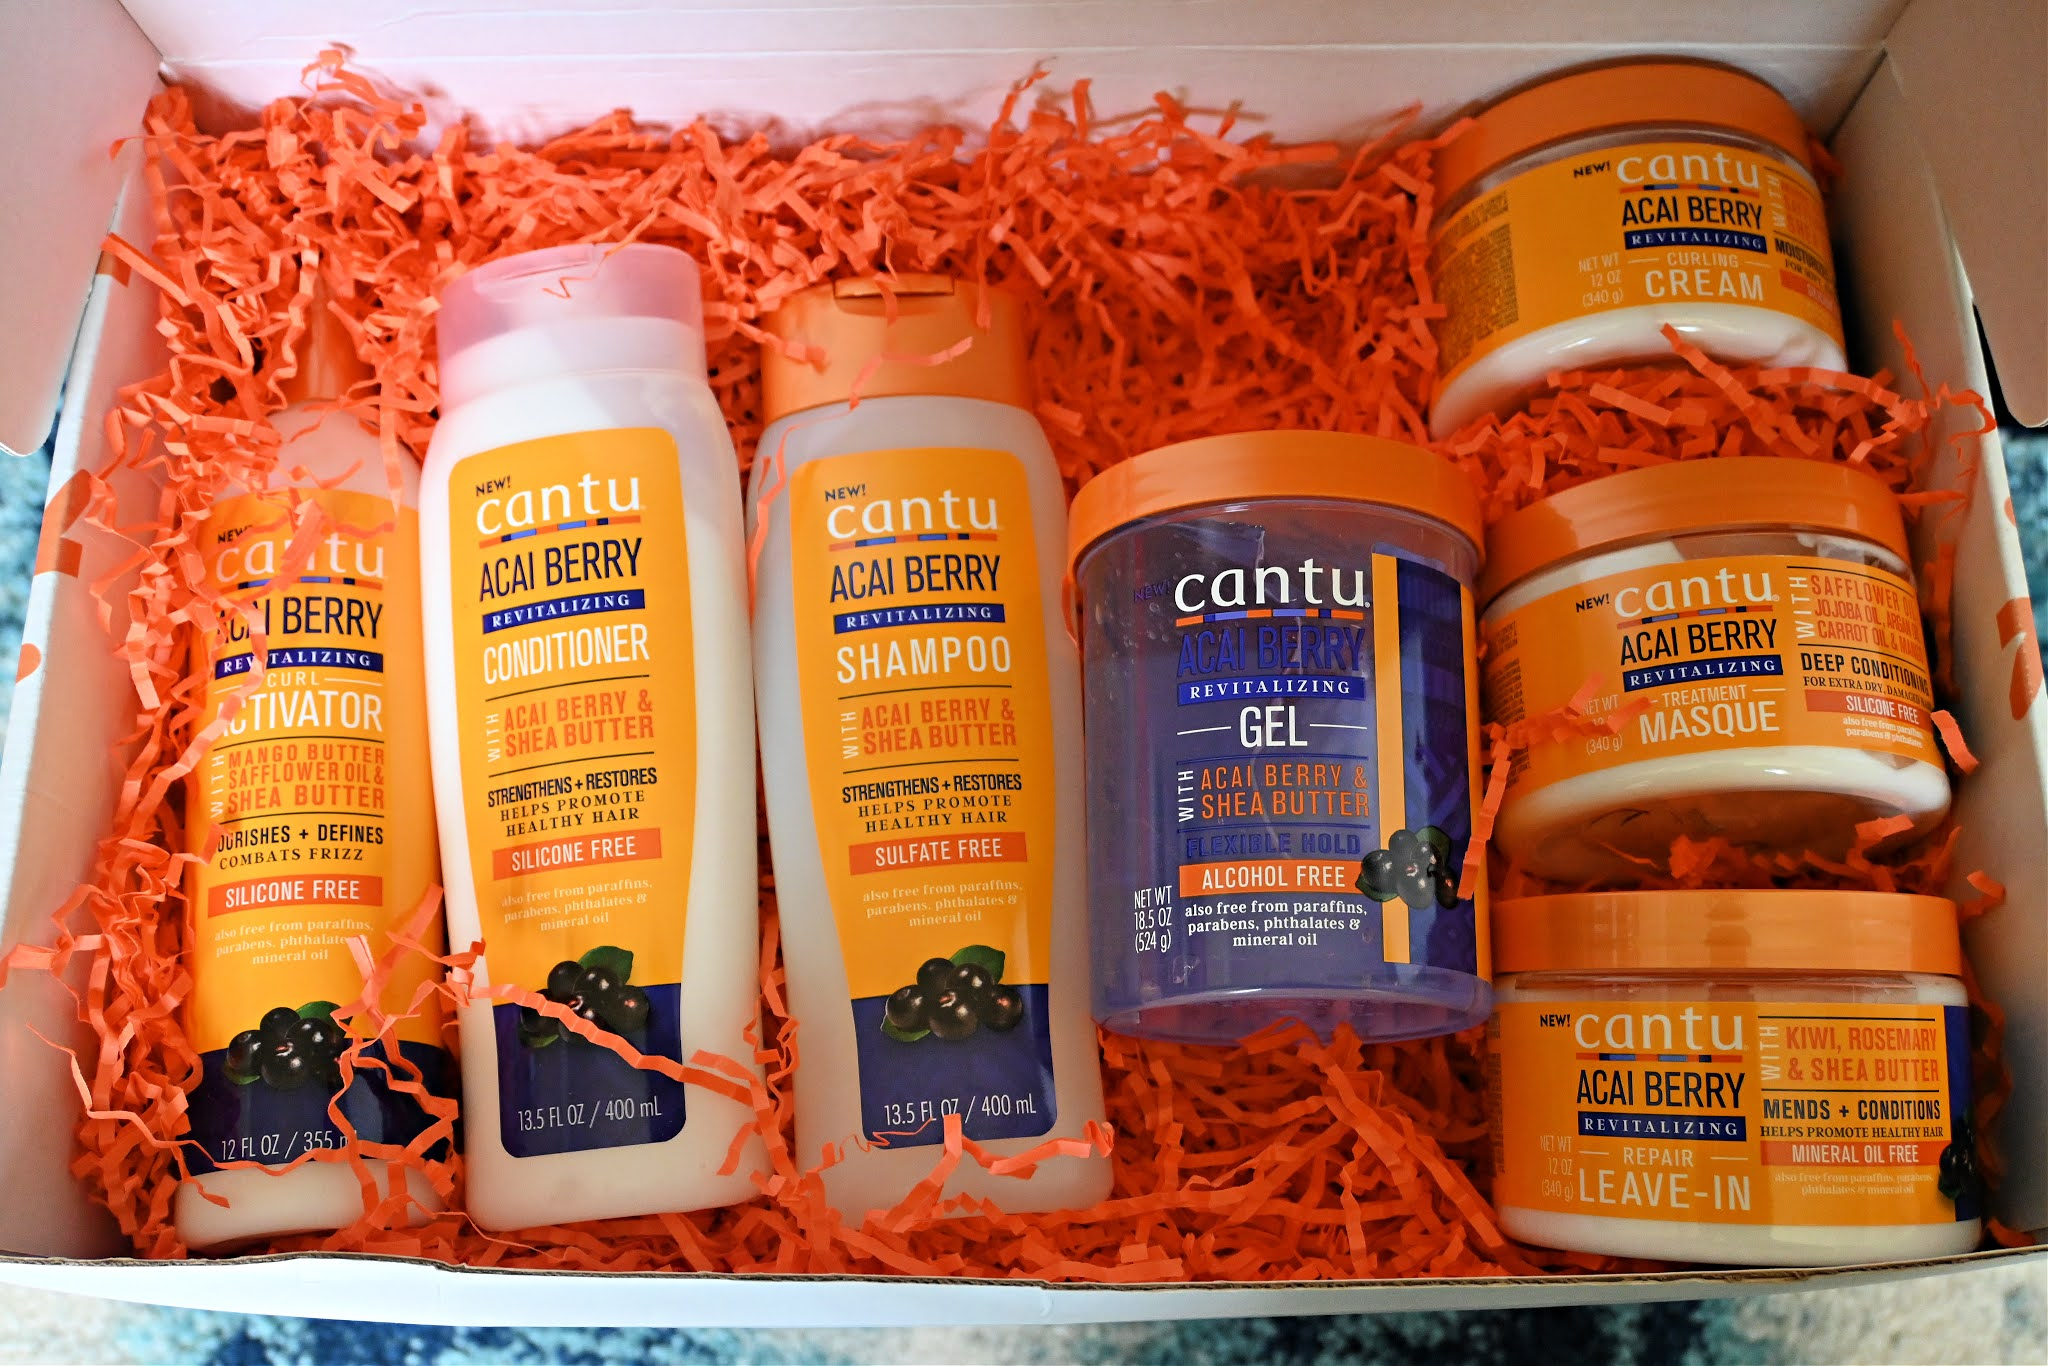 Cantu Beauty's Acai Berry Haircare Collection